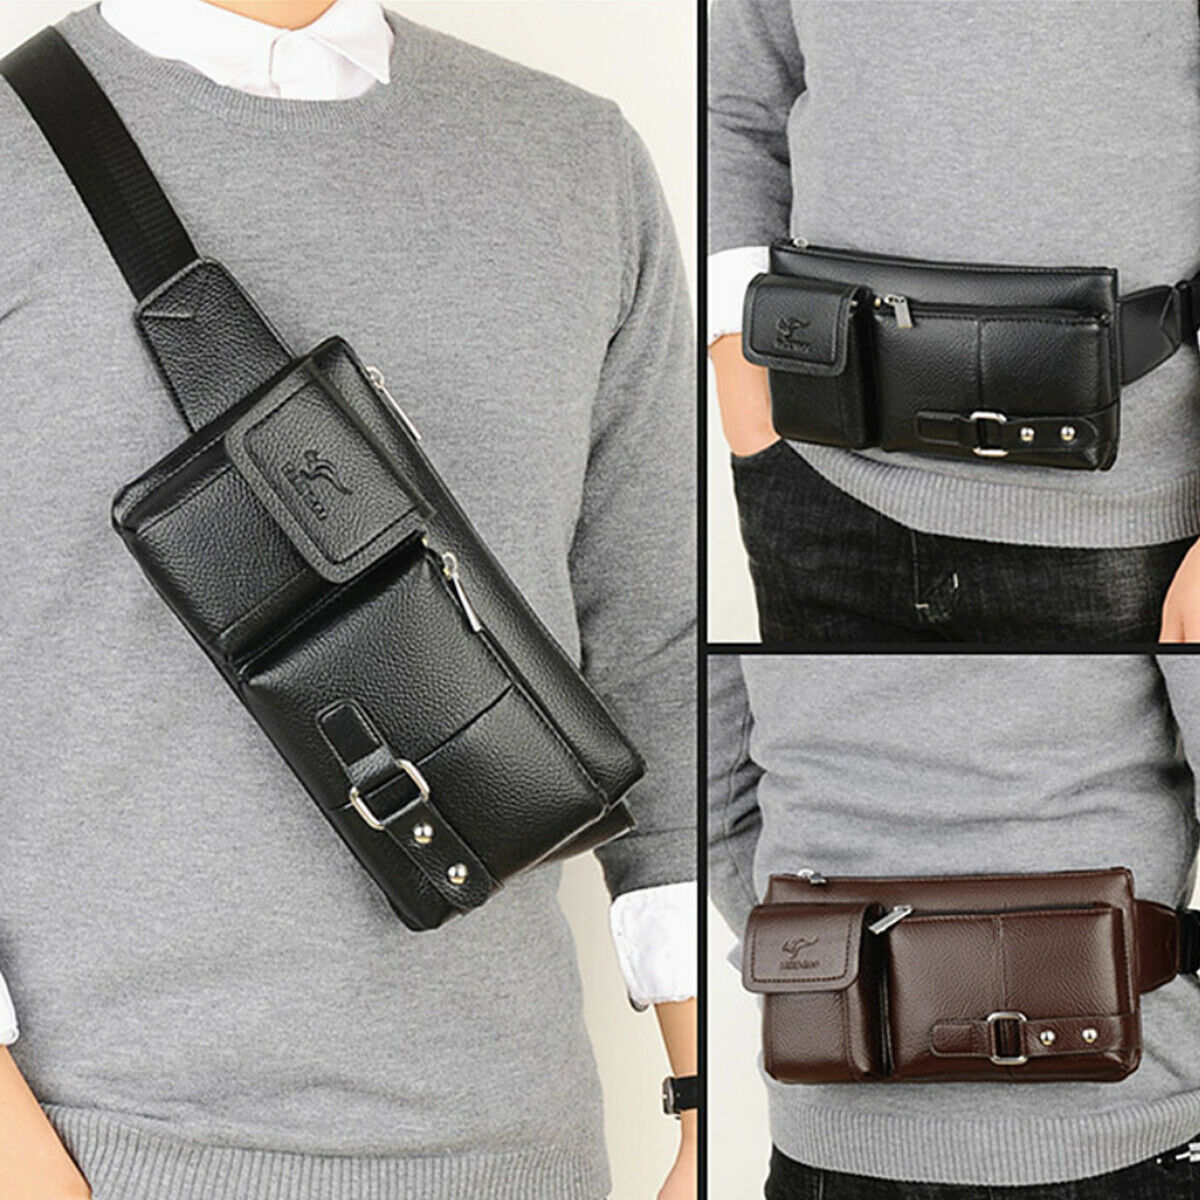 Mens Women Leather Waist Fanny Pouch Pack Travel Bag Belt Holiday Casu... - s l1600